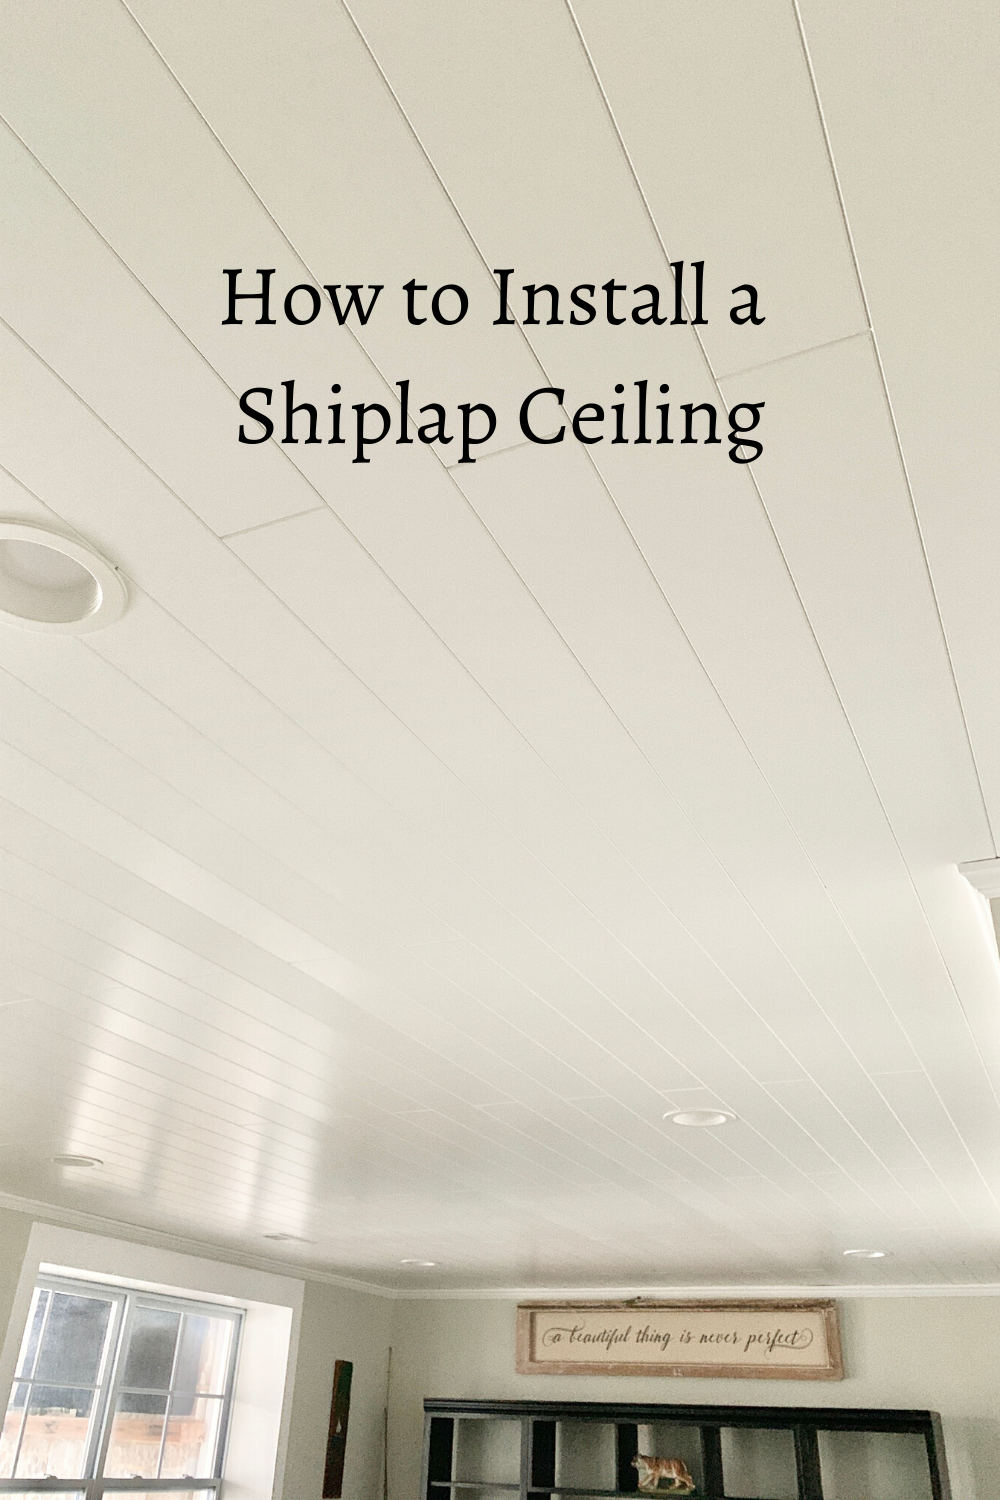 How To Install A Shiplap Ceiling Using Armstrong Woodhaven Wood